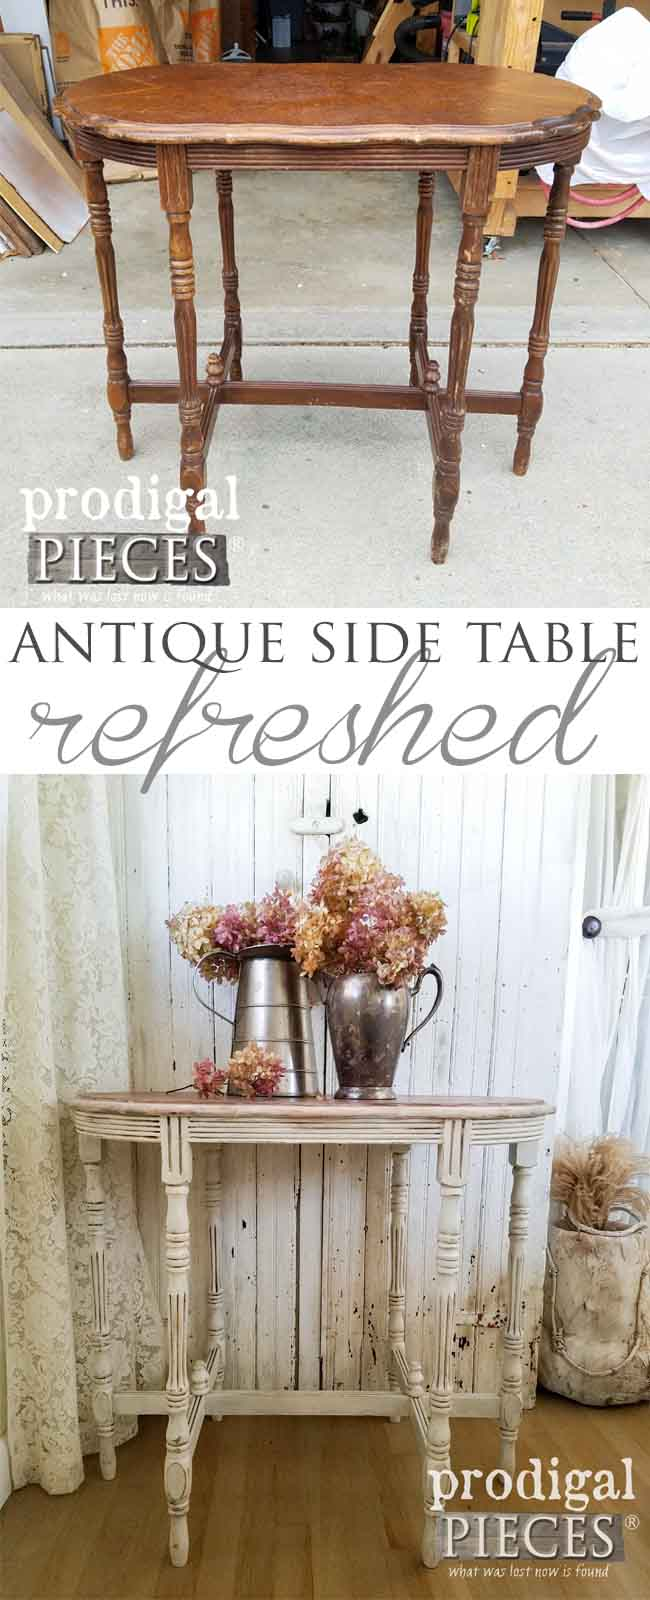 Oh, how beautiful! This side table needed some TLC and Larissa of Prodigal Pieces gave it a refreshed new look. Details at Prodigal Pieces | prodigalpieces.com